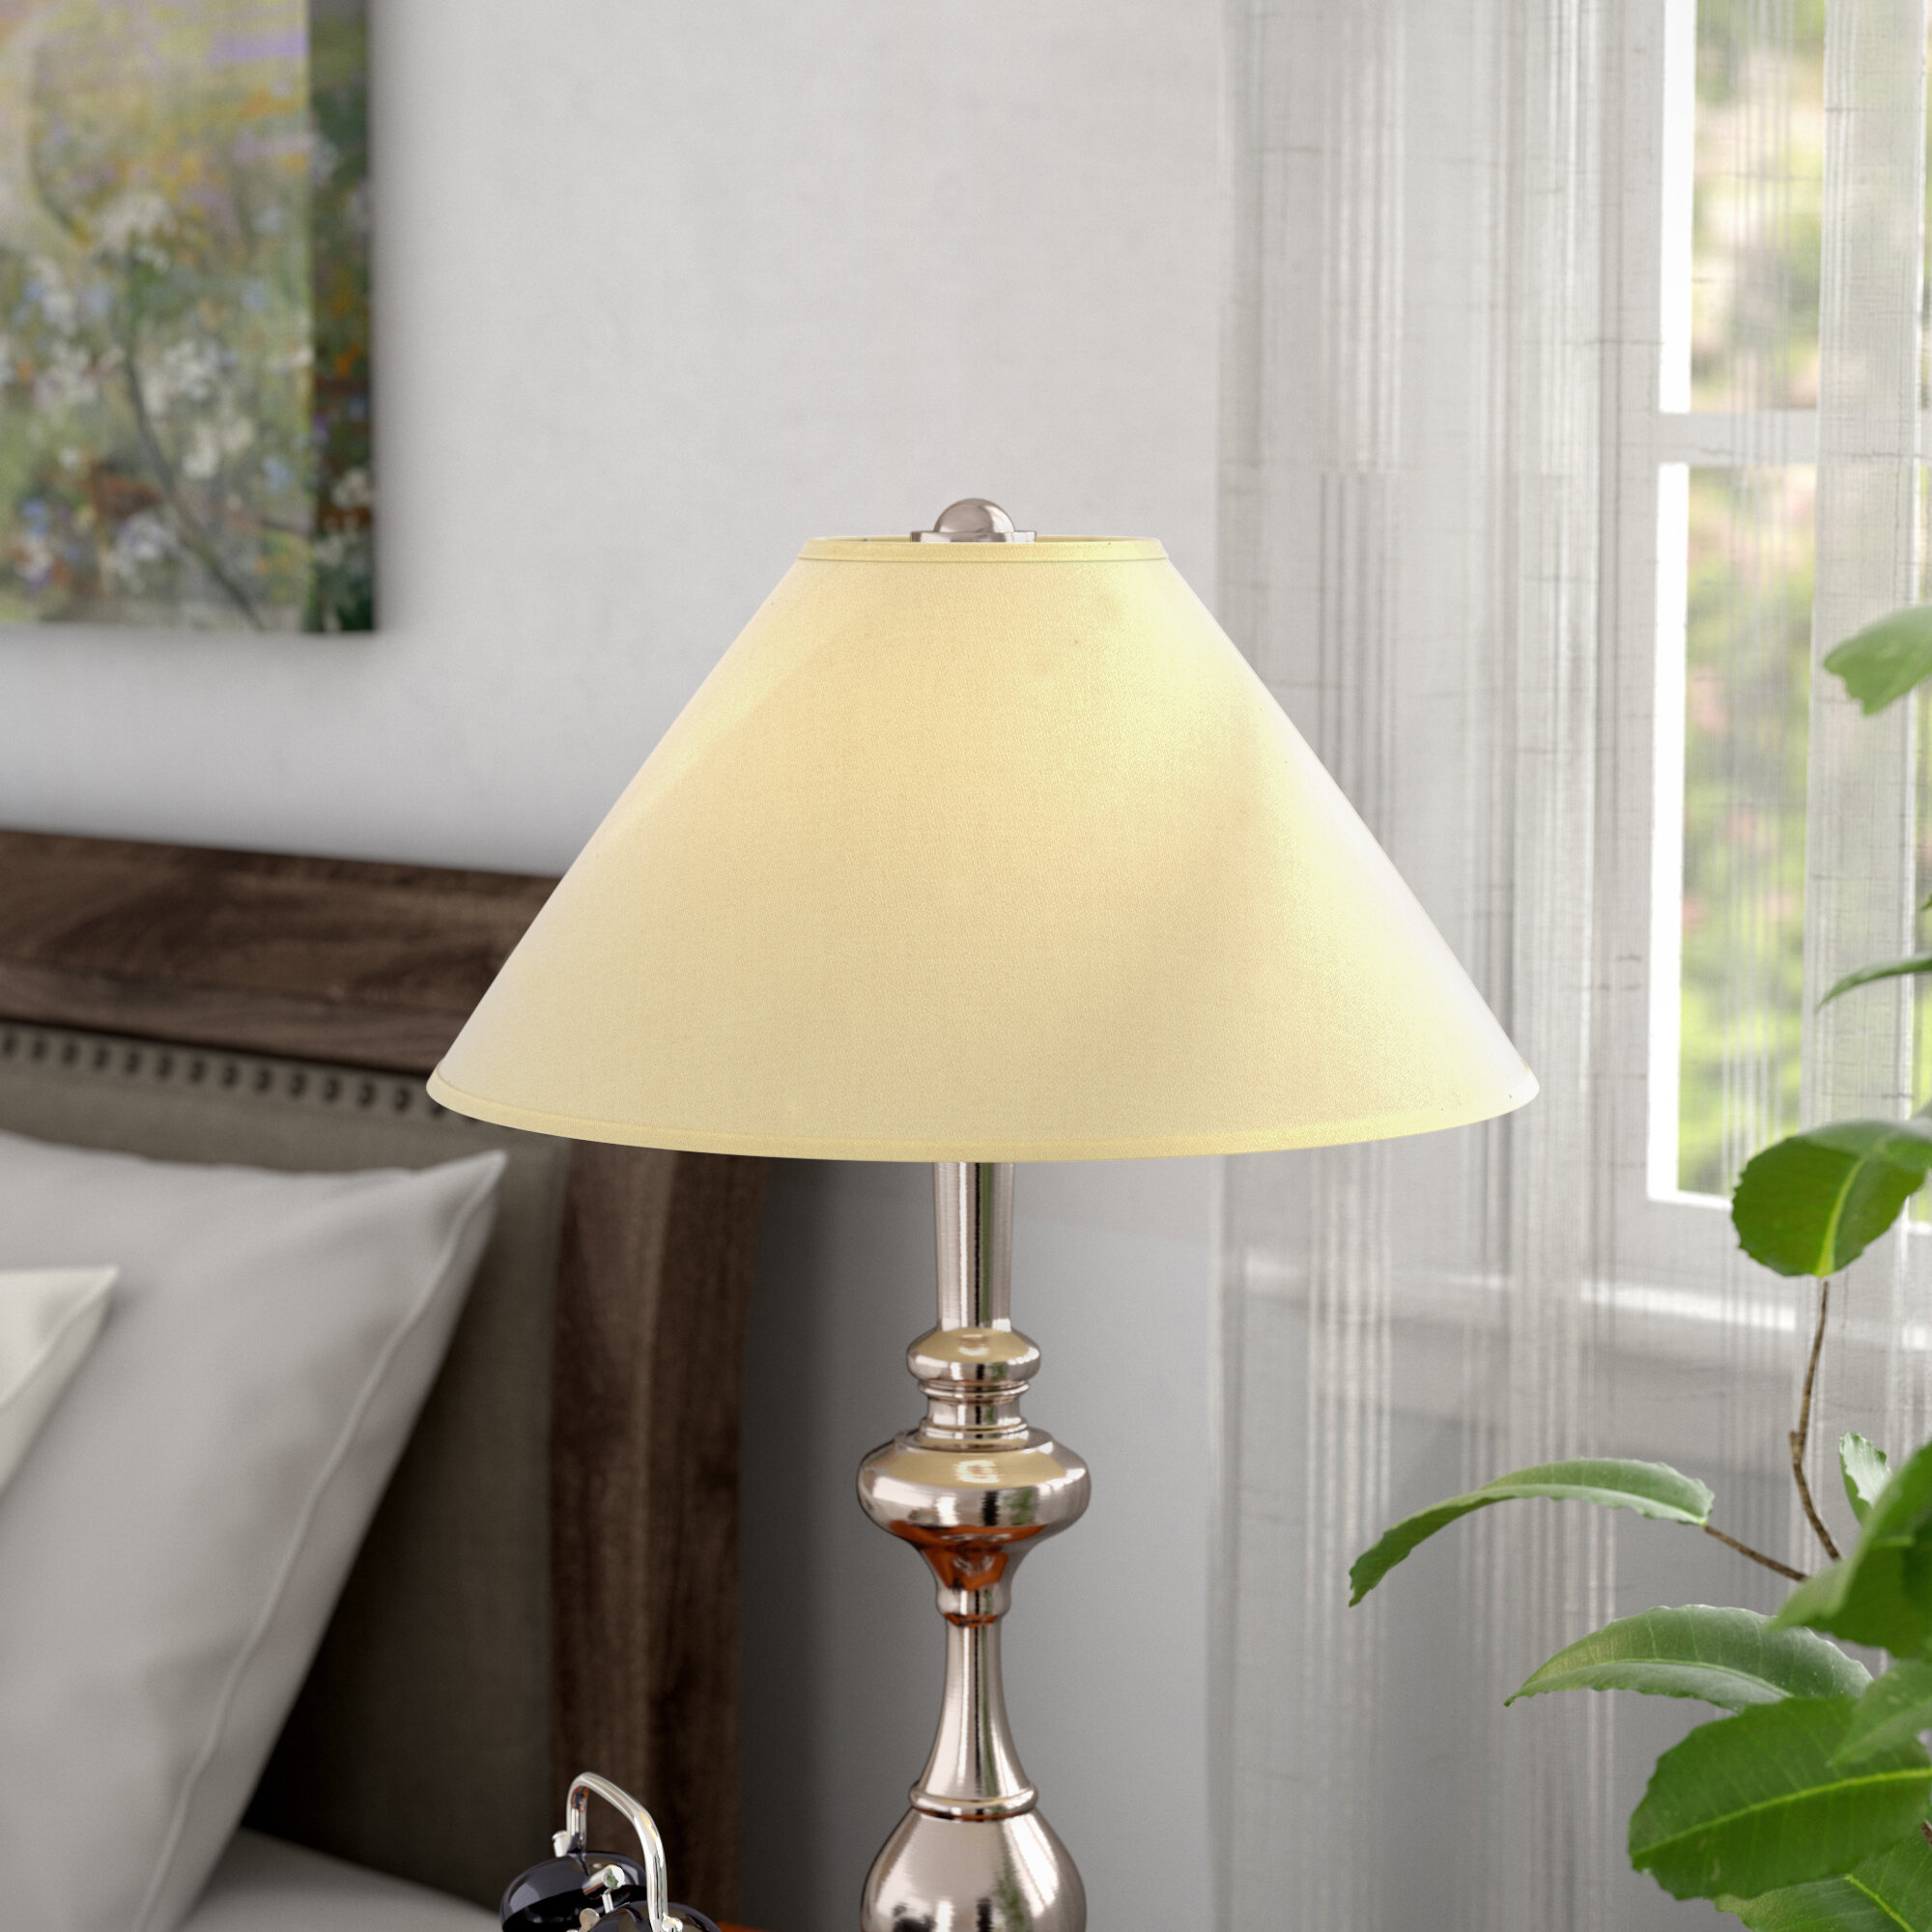 Red barrel studio 13 linen empire lamp shade reviews wayfair